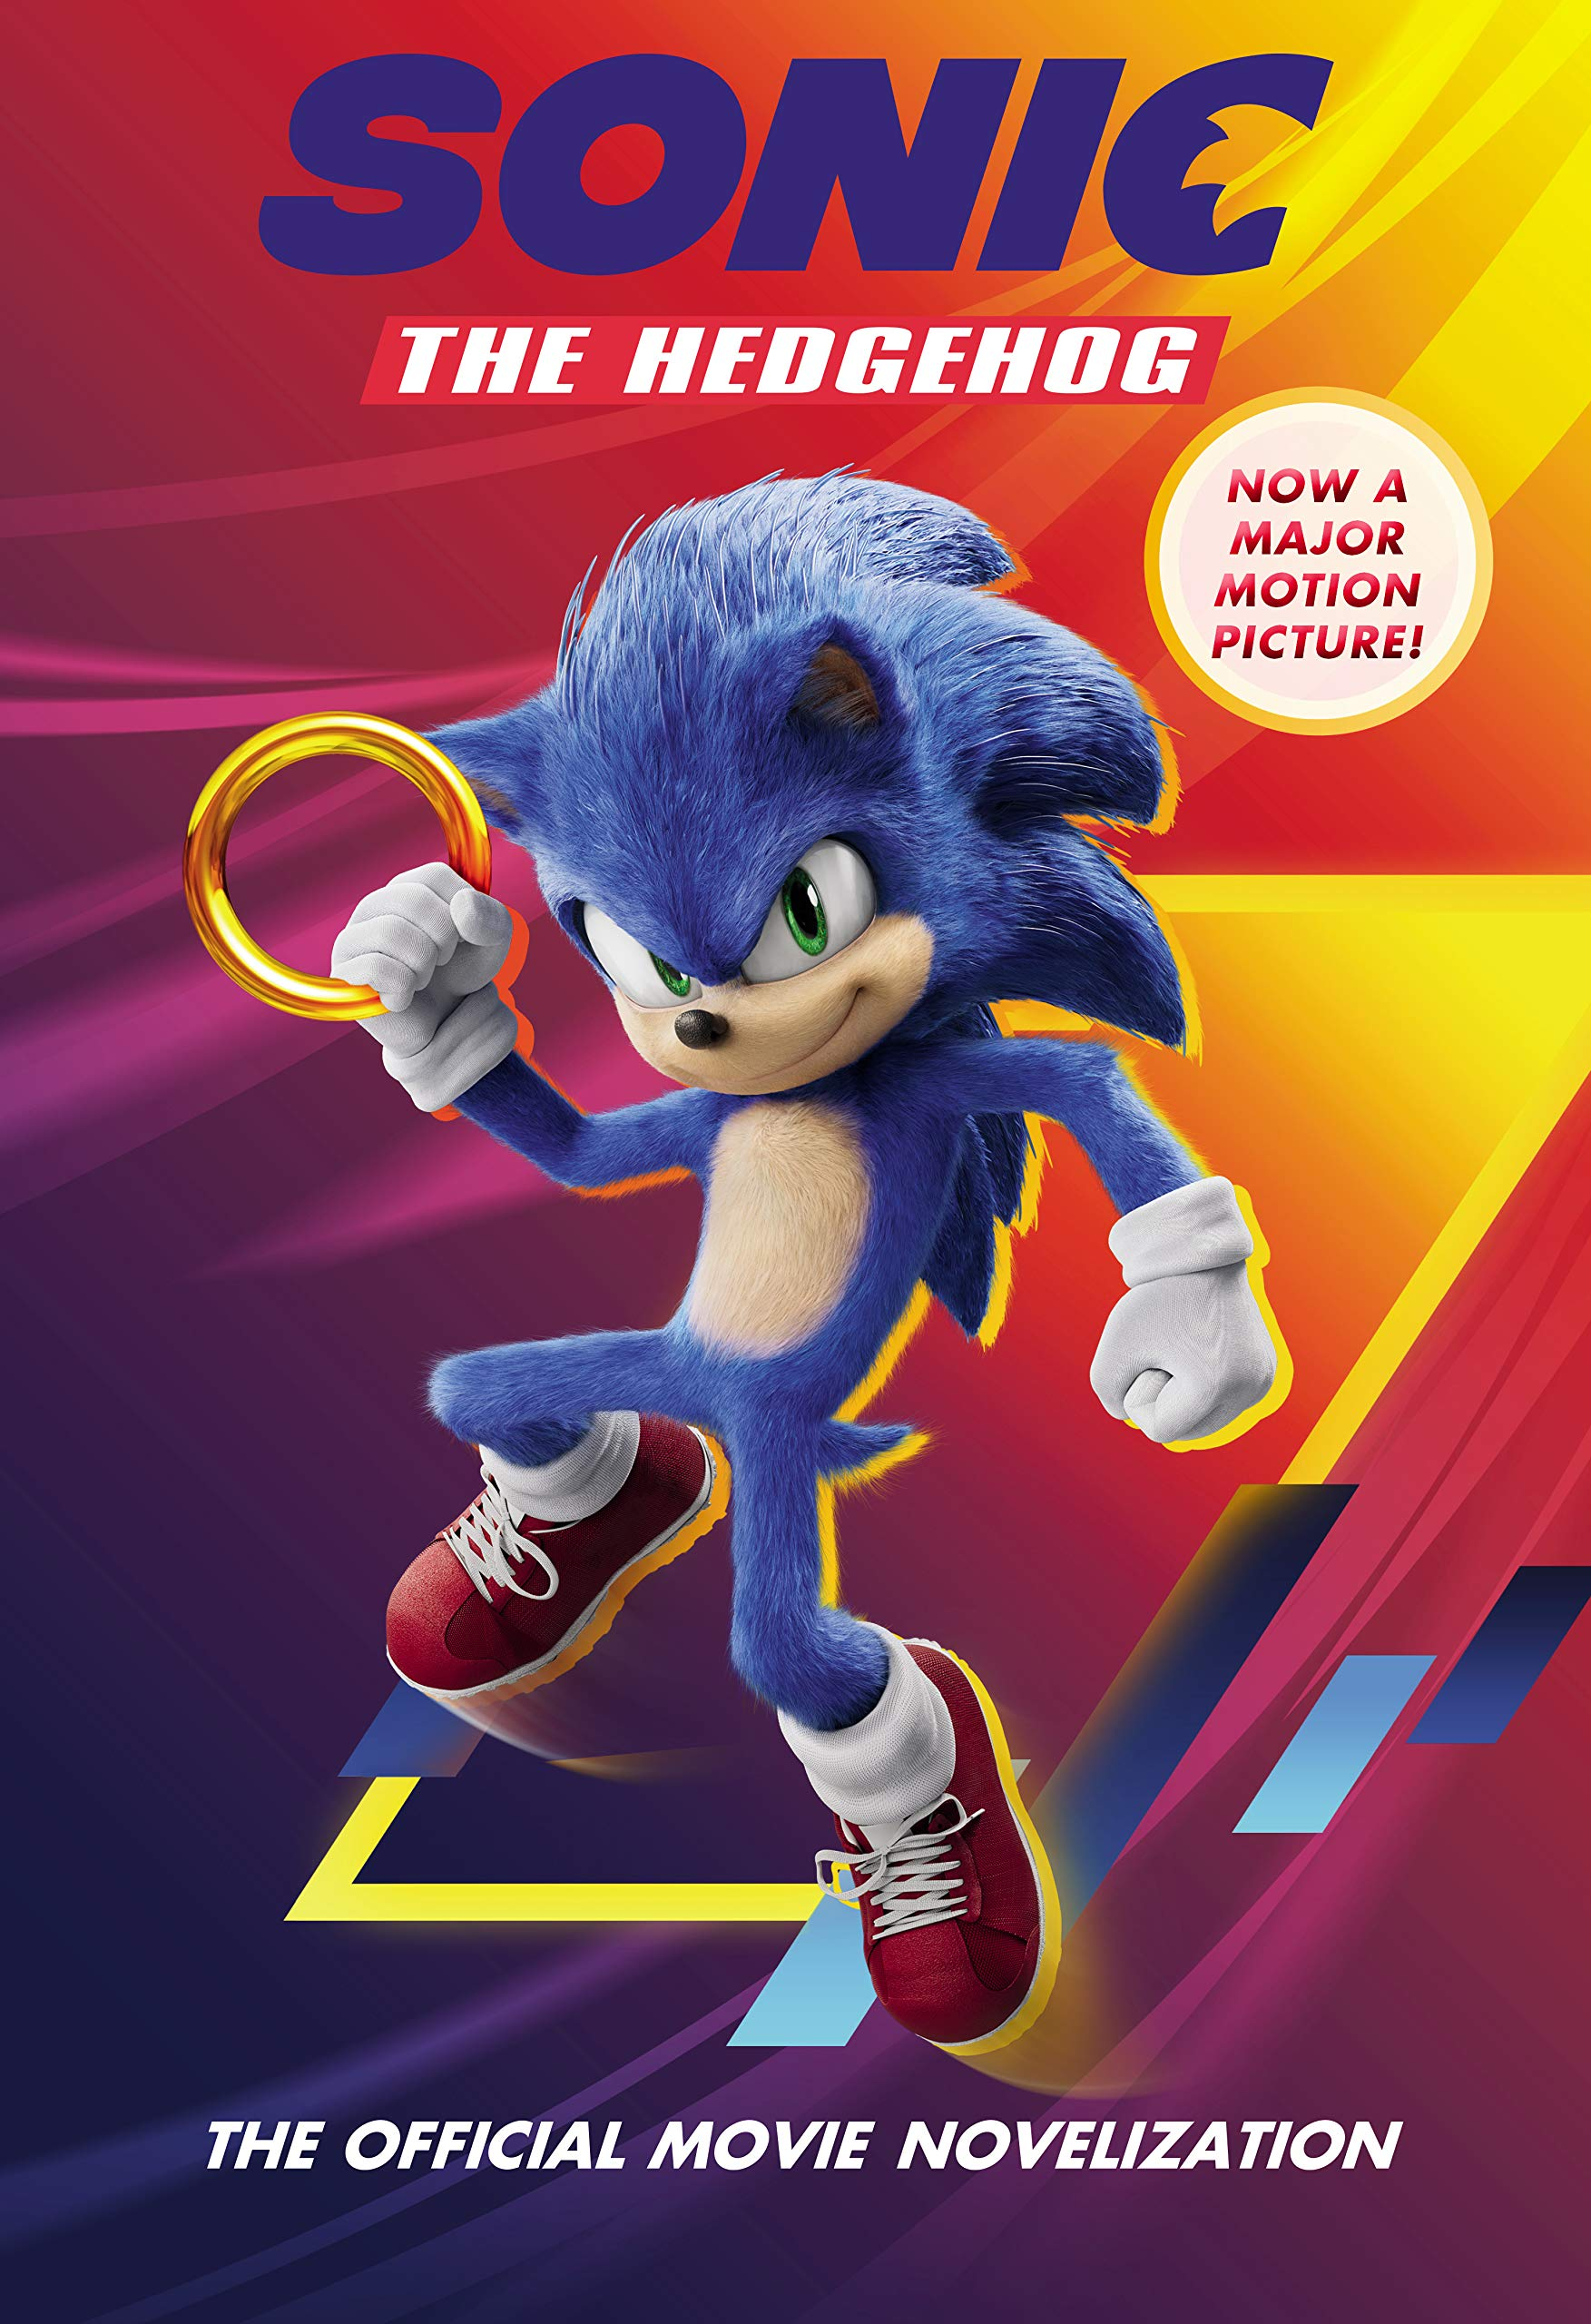 Sonic The Hedgehog The Official Movie Novelization Sonic News